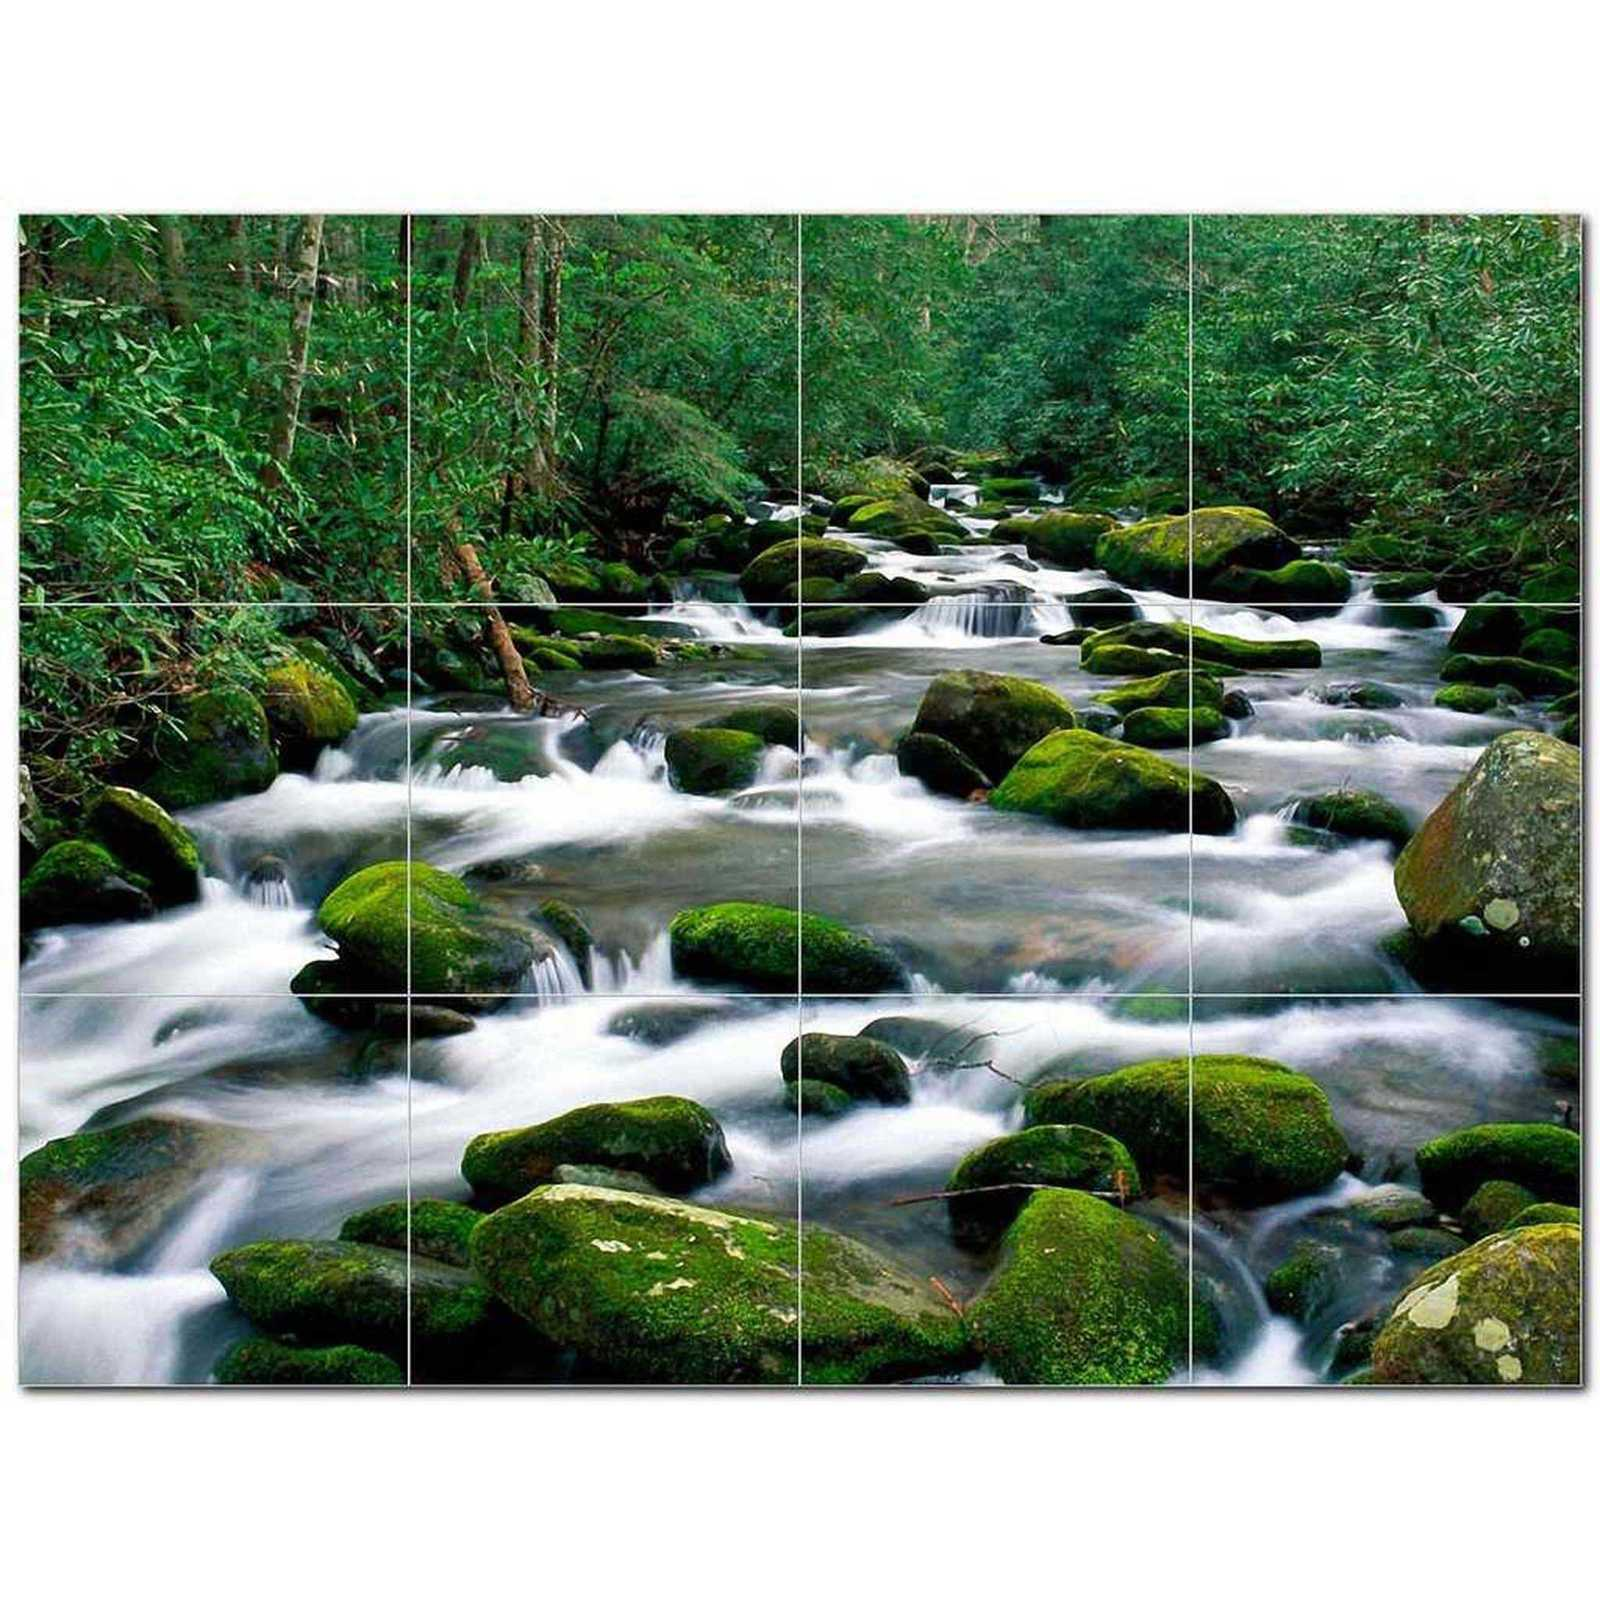 Primary image for Waterfall Photo Ceramic Tile Mural Kitchen Backsplash Bathroom Shower BAZ406127